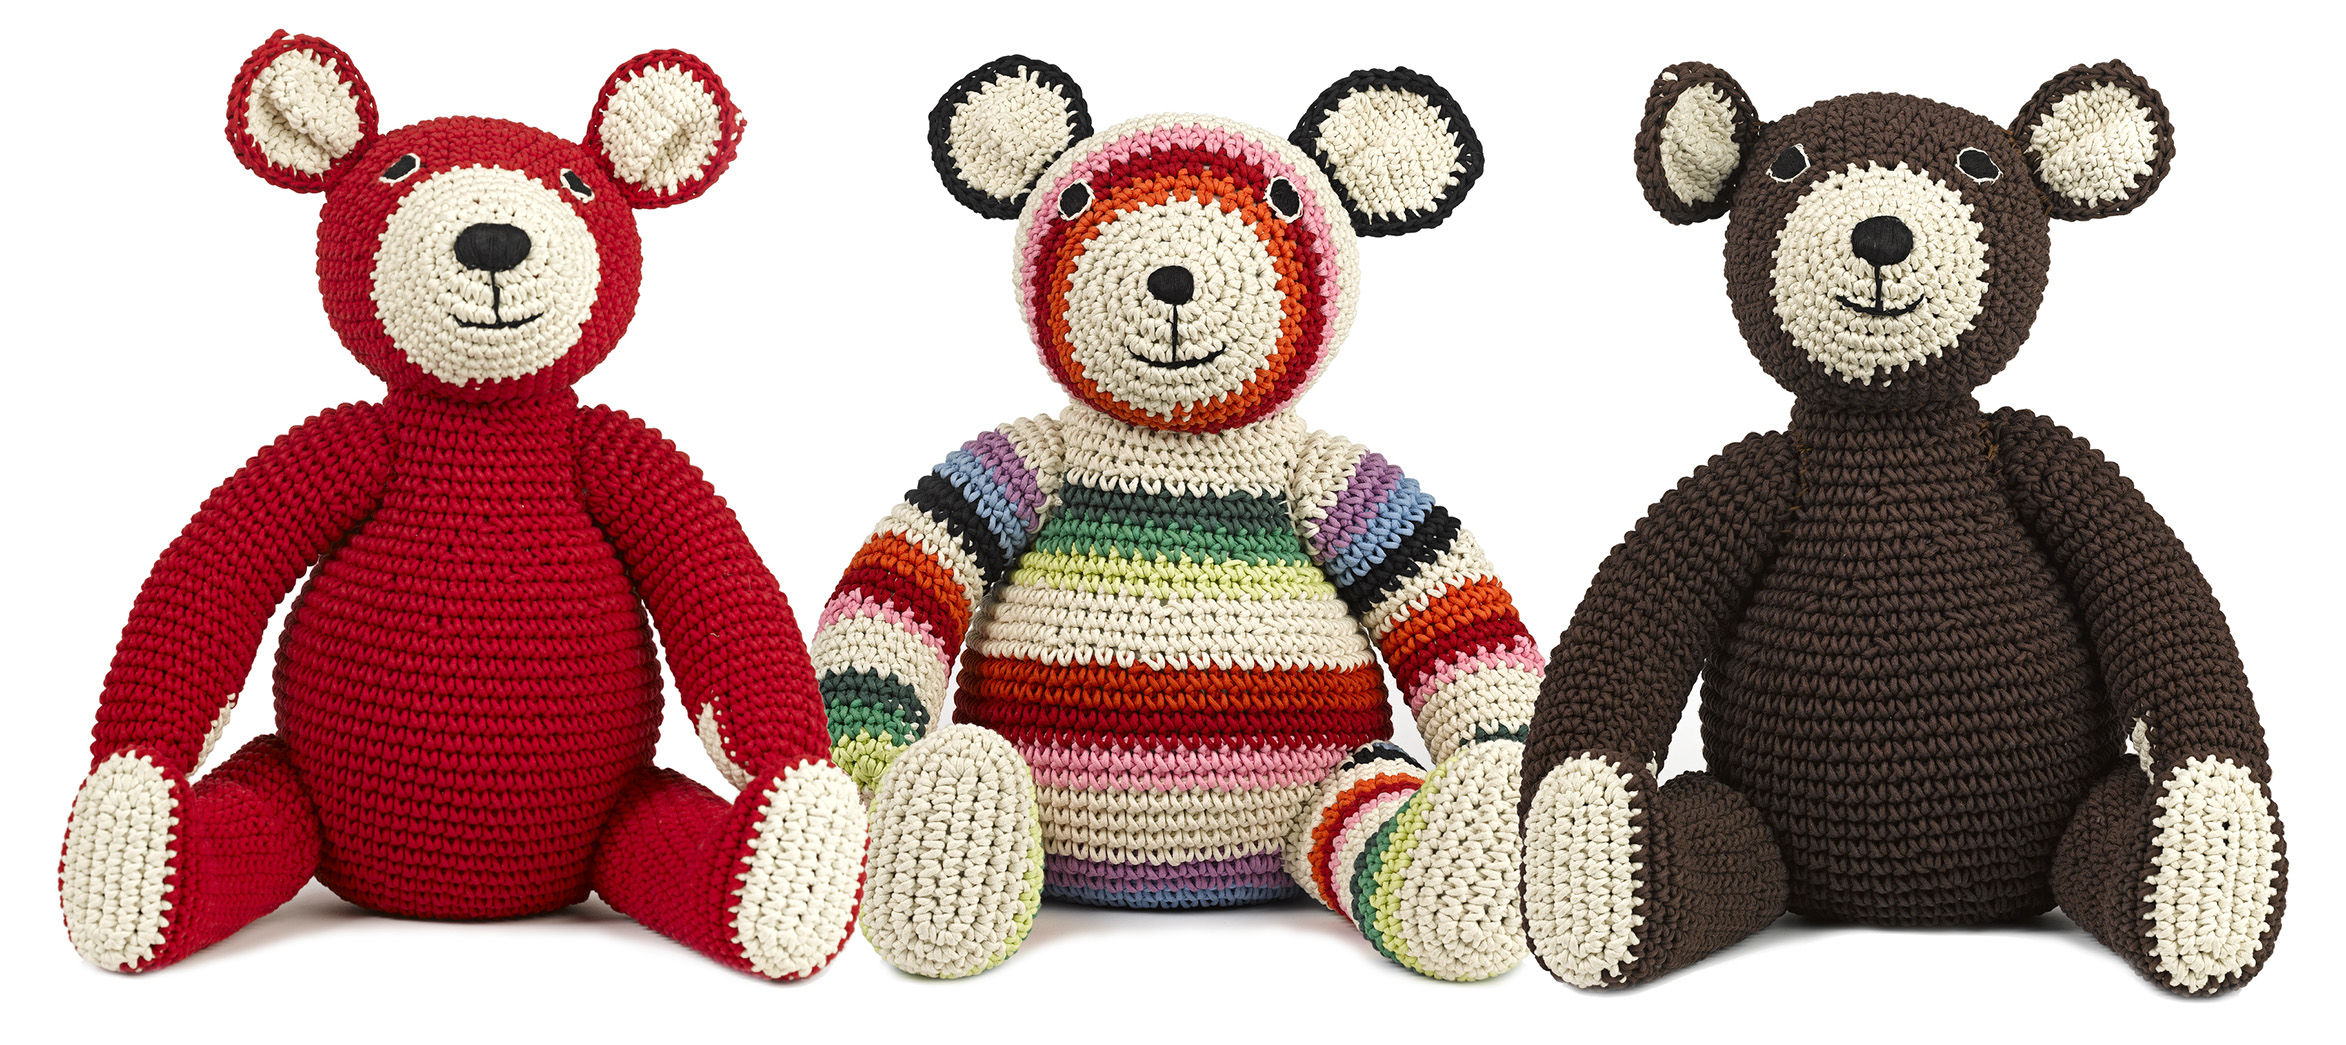 mama teddy cuddly toy crochet cuddly toy red by anne claire petit made in design uk. Black Bedroom Furniture Sets. Home Design Ideas